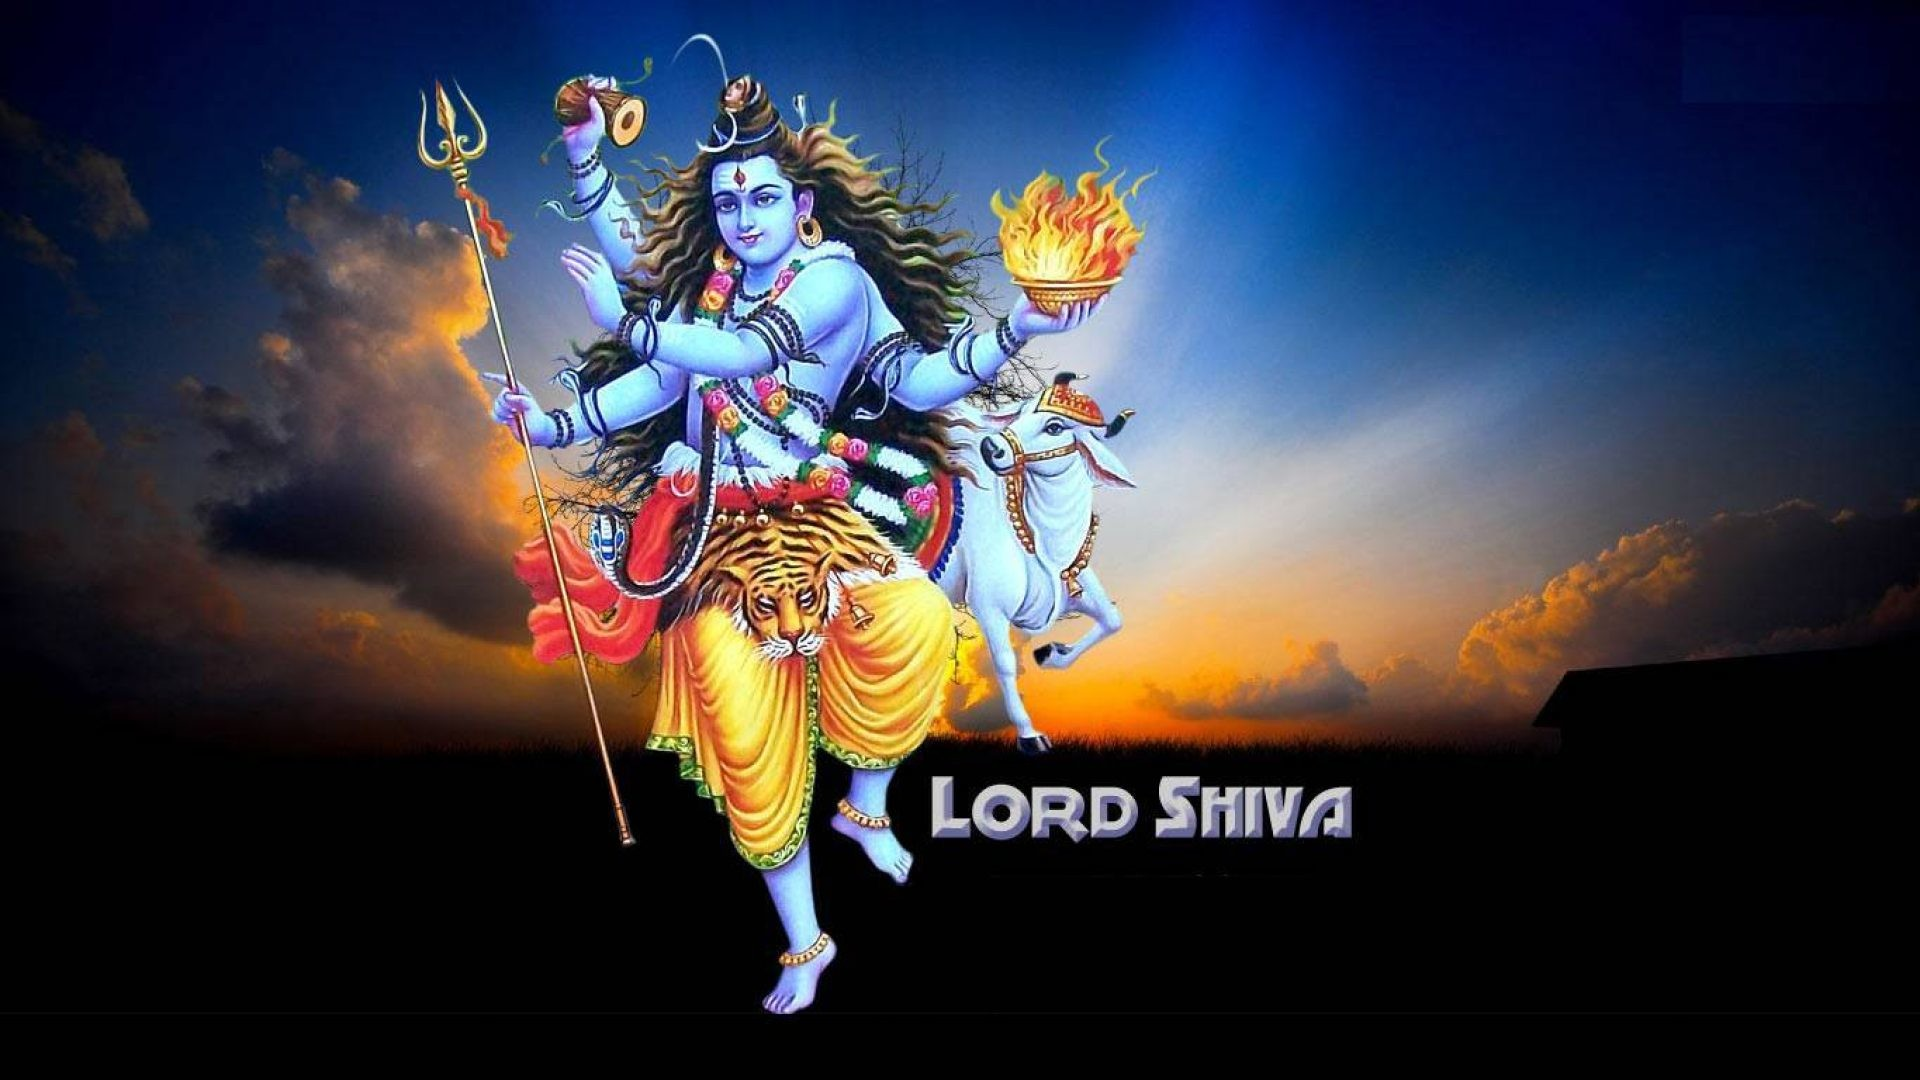 Lord Shiva Wallpapers 53 Pictures